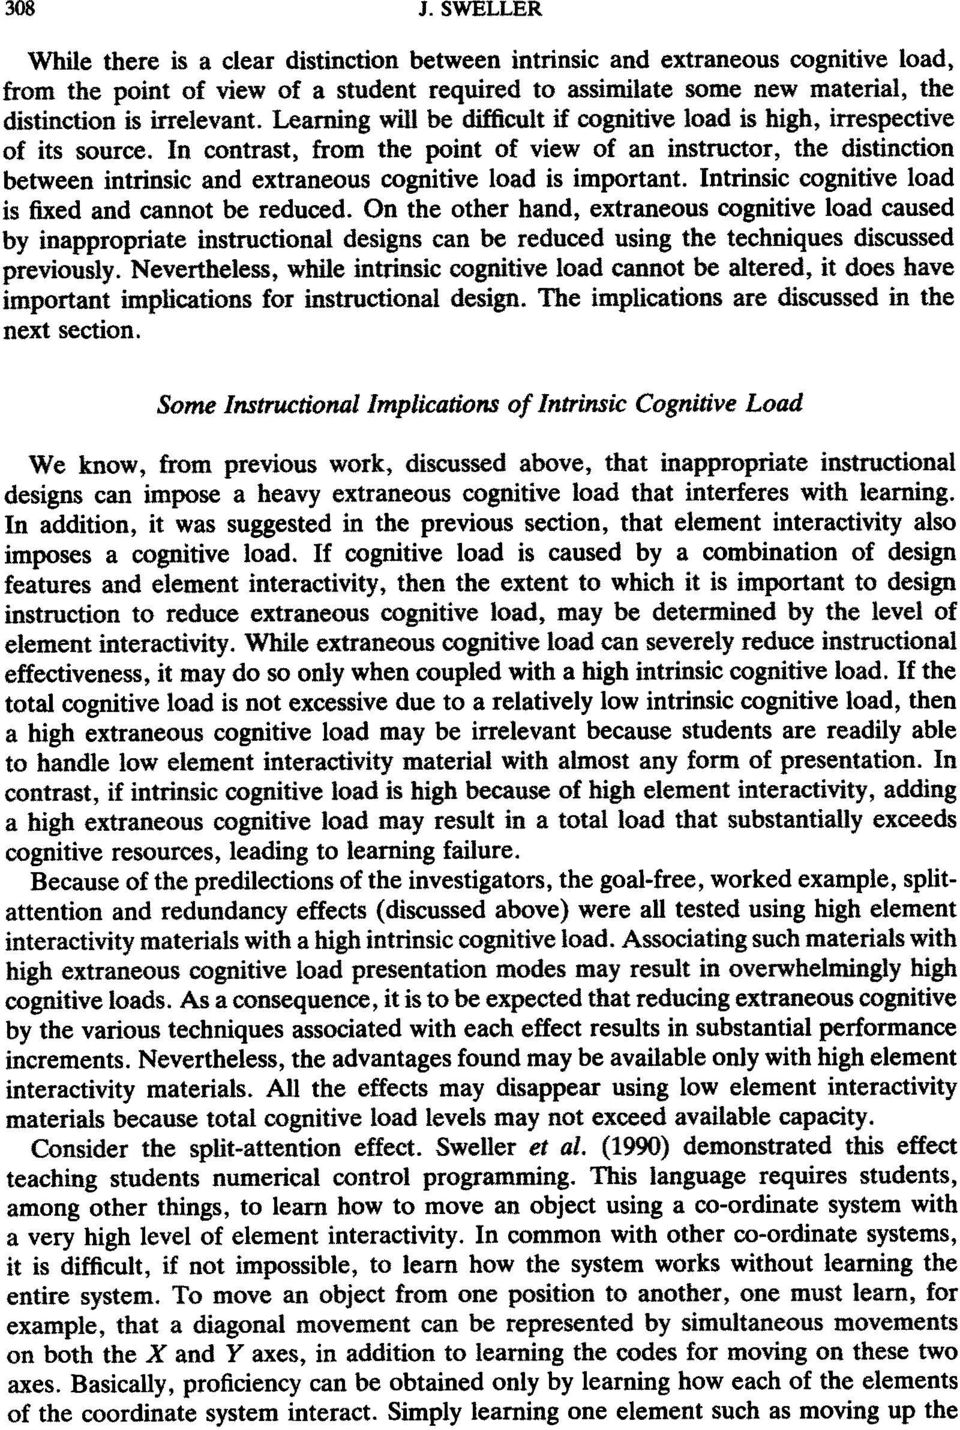 Learning will be difficult if cognitive load is high, irrespective of its source.